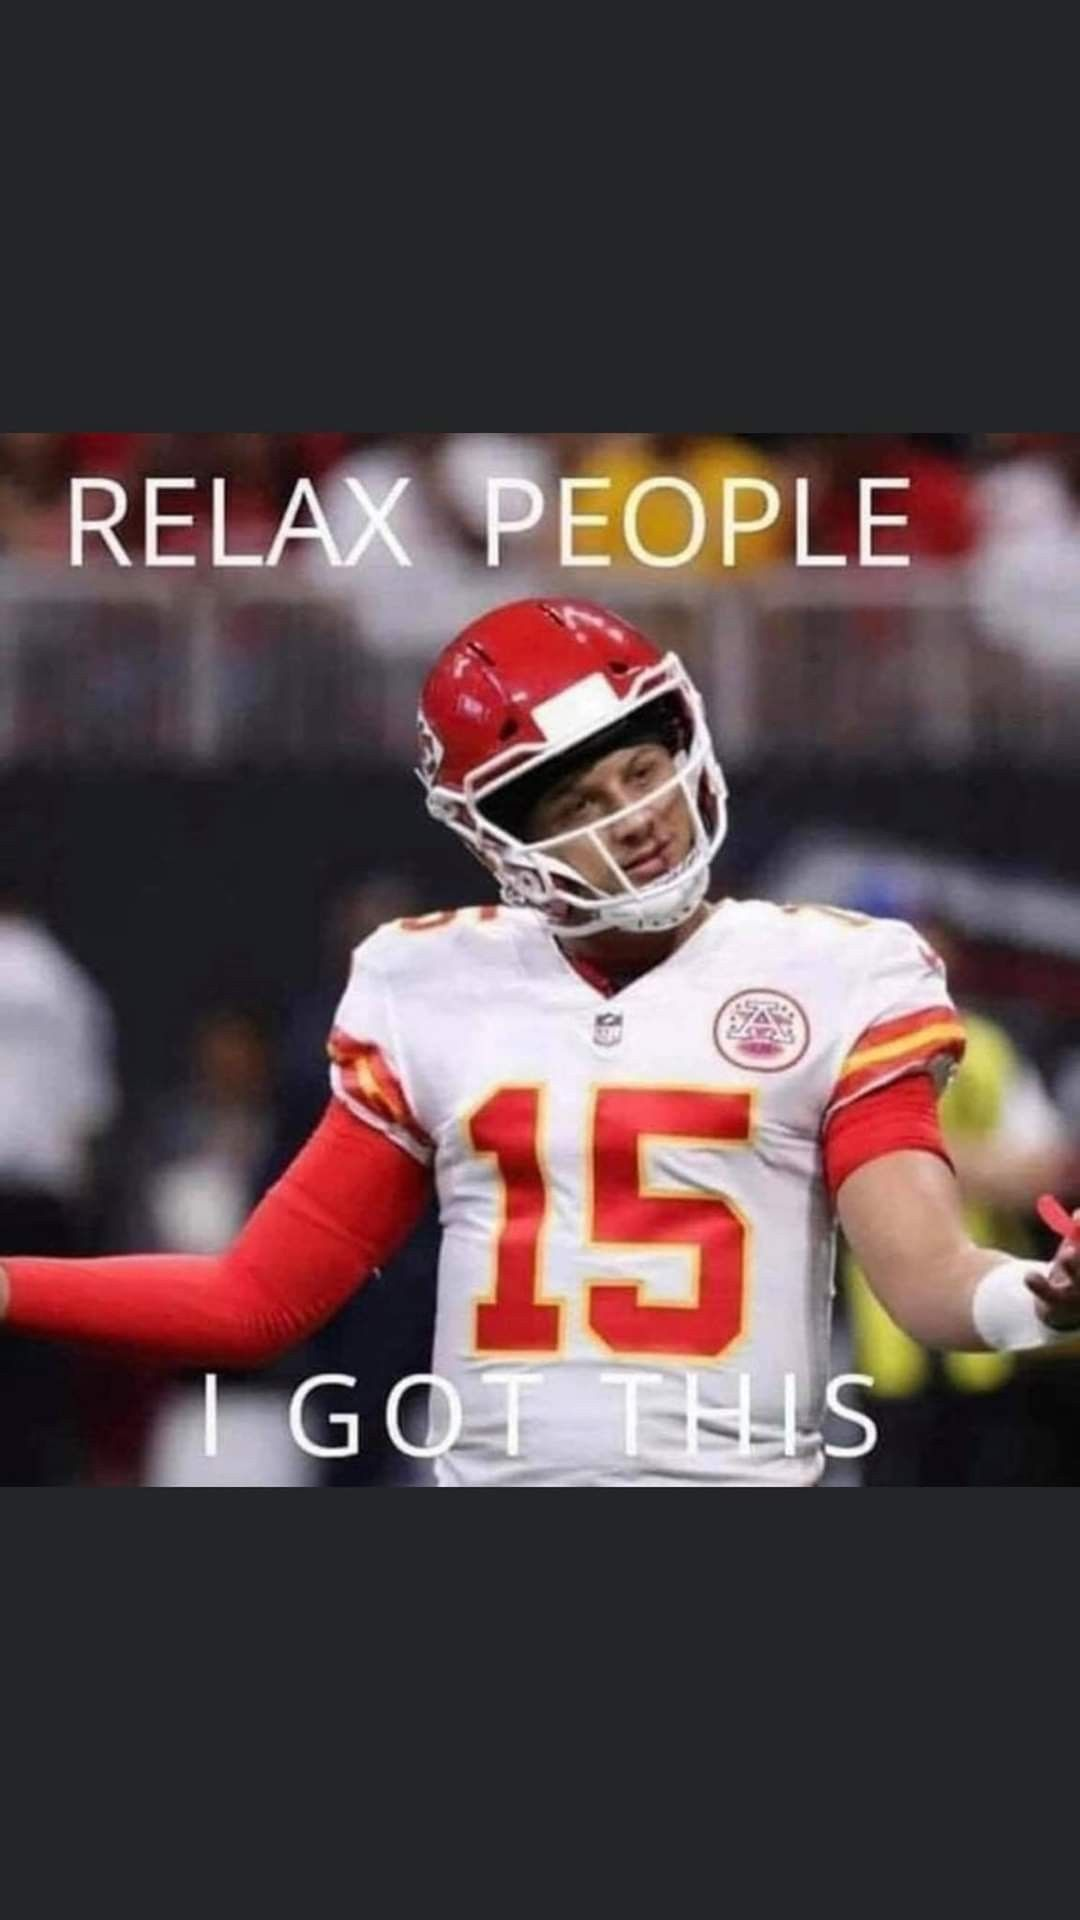 Pin By Jan L On Chiefs In 2020 College Football Players